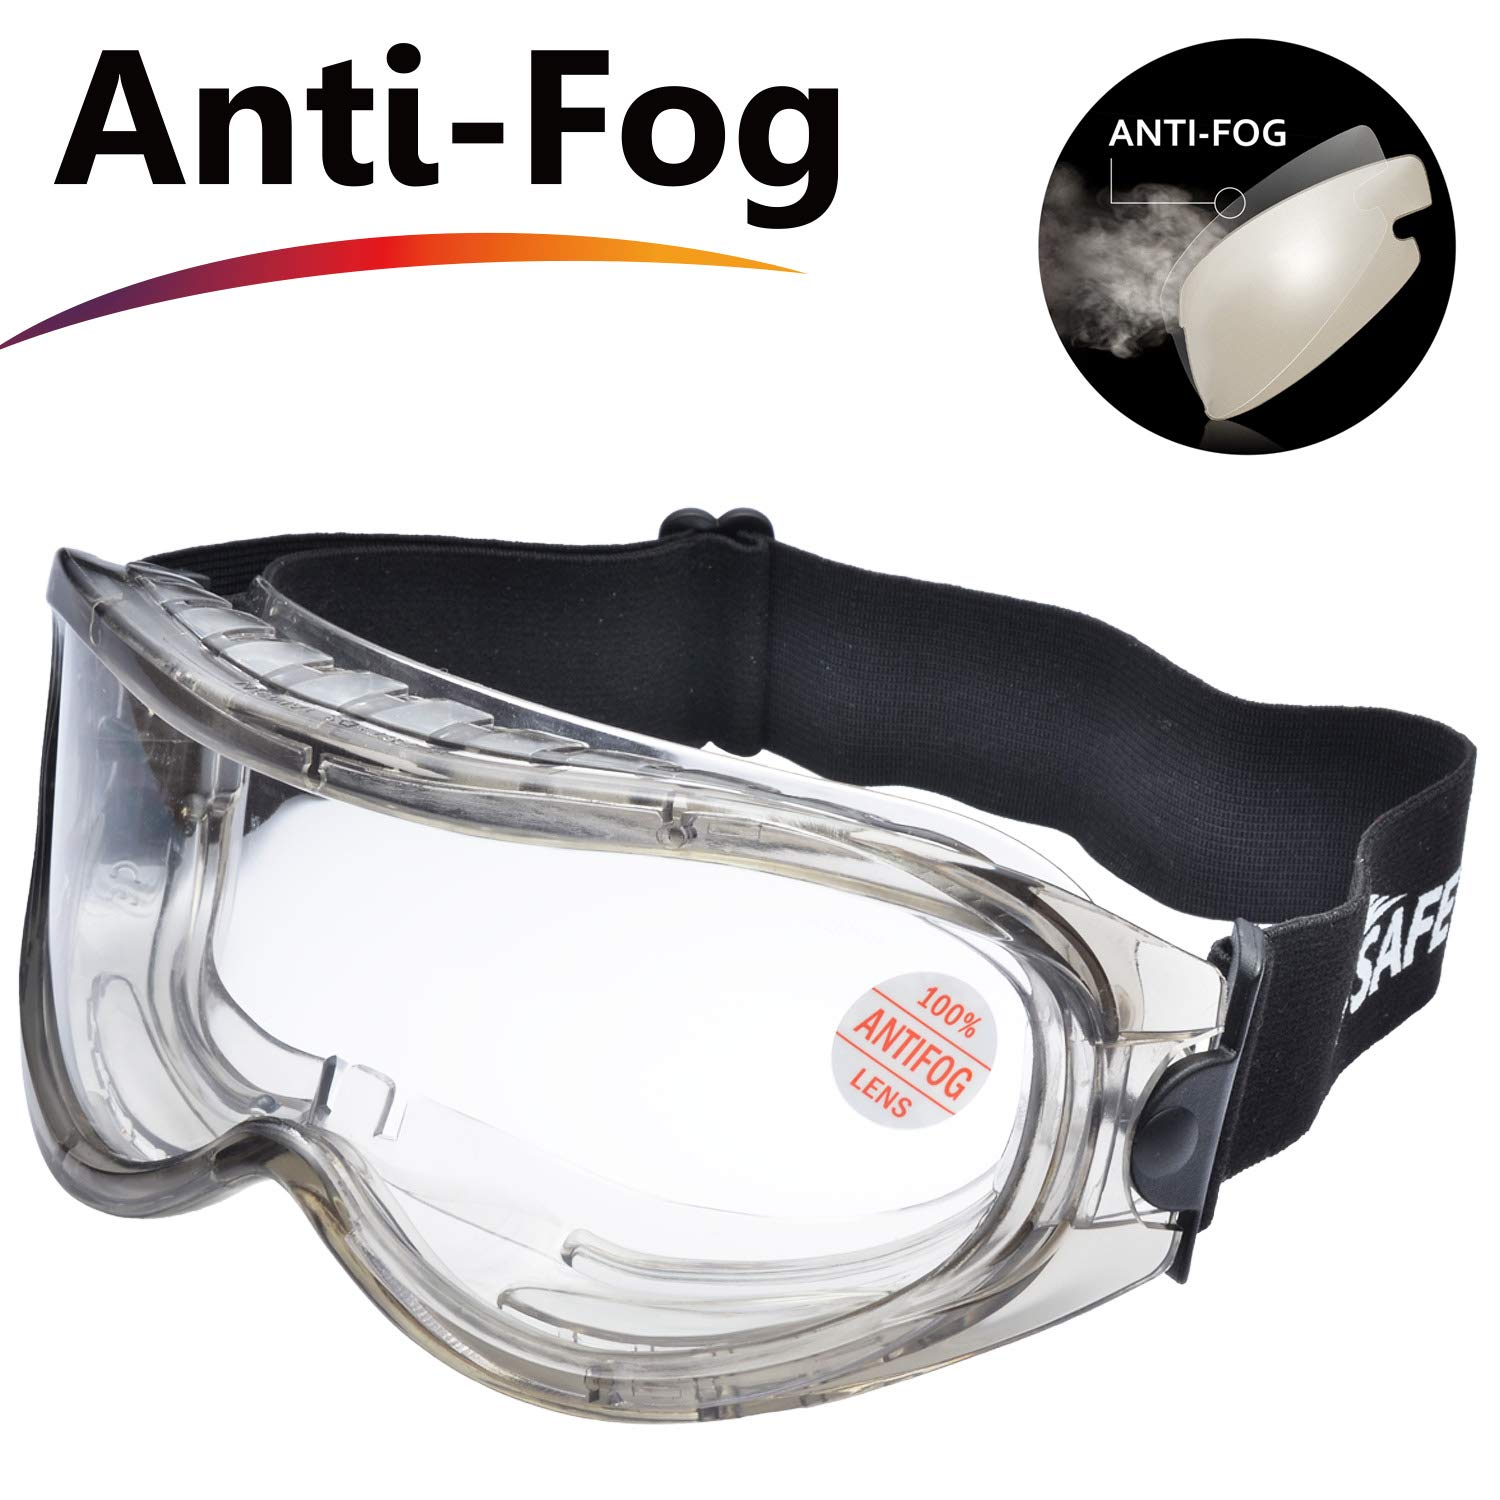 8a6b4eff96 SAFEYEAR Anti Fog Safety Goggles- SG007 HD Scratch Resistant Safety Glasses  Lens for Men and Women, VU Protection Over Glasses Work Goggles for DIY, ...